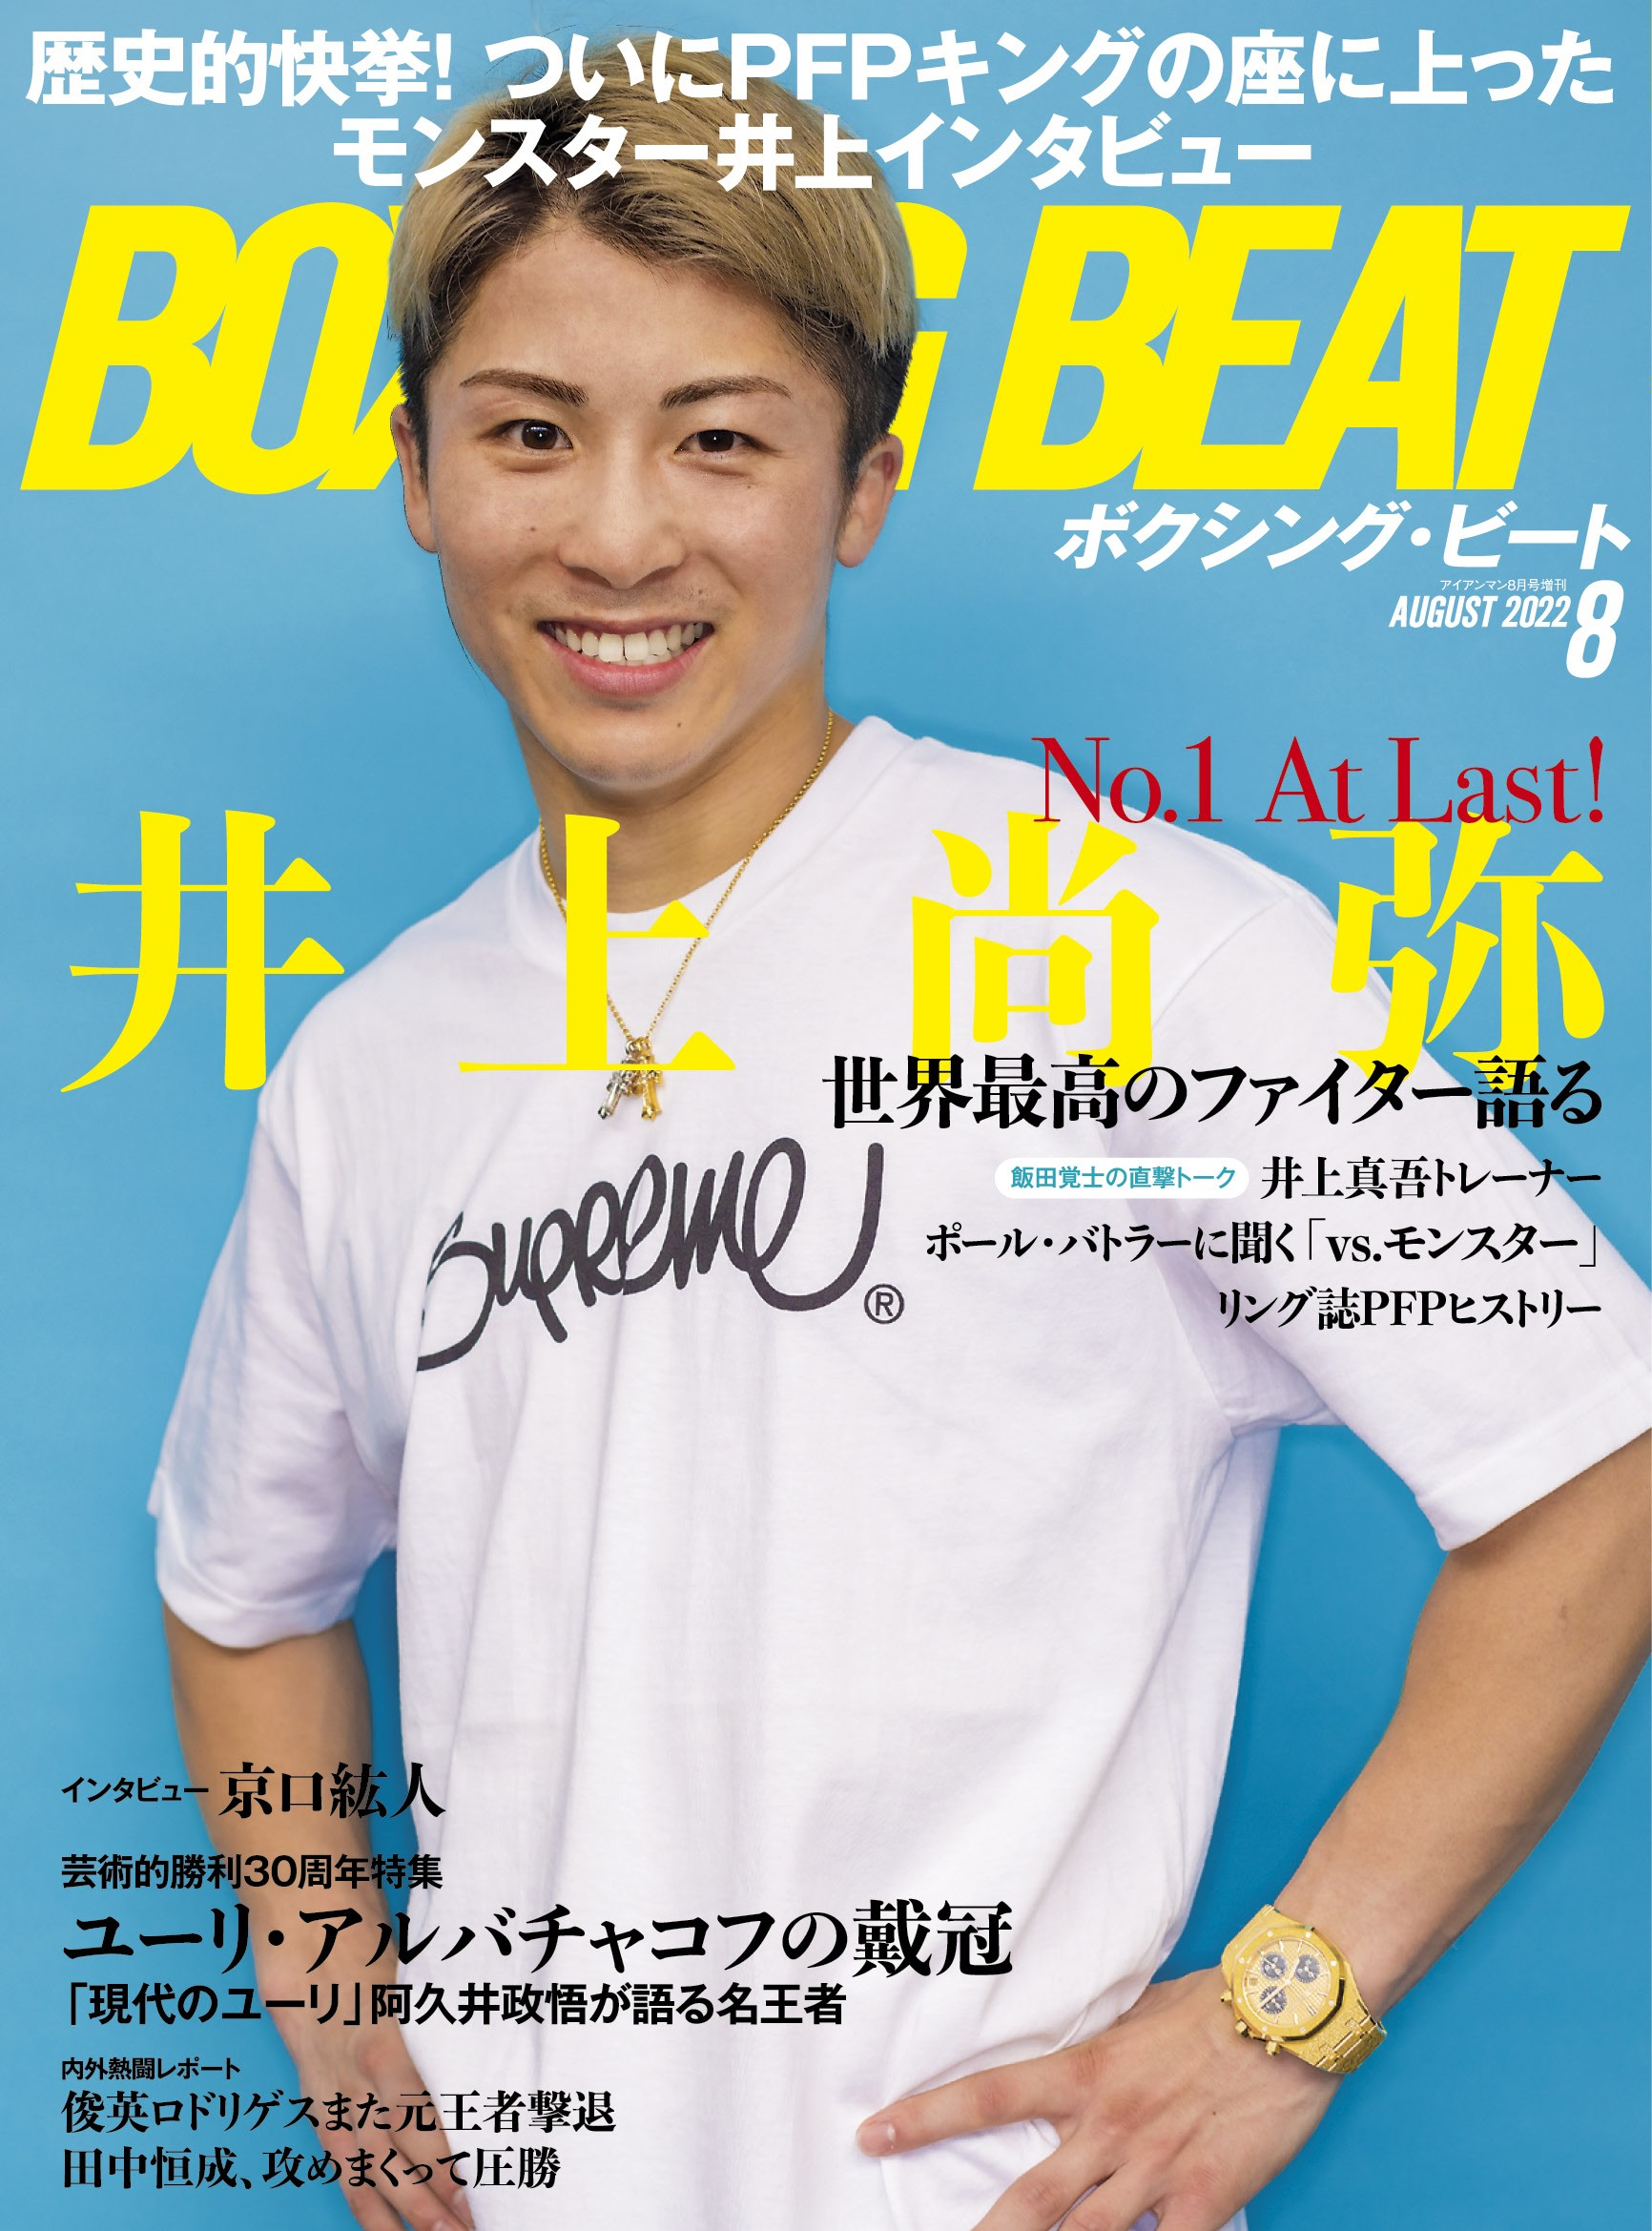 BOXING BEAT 2016年11月号